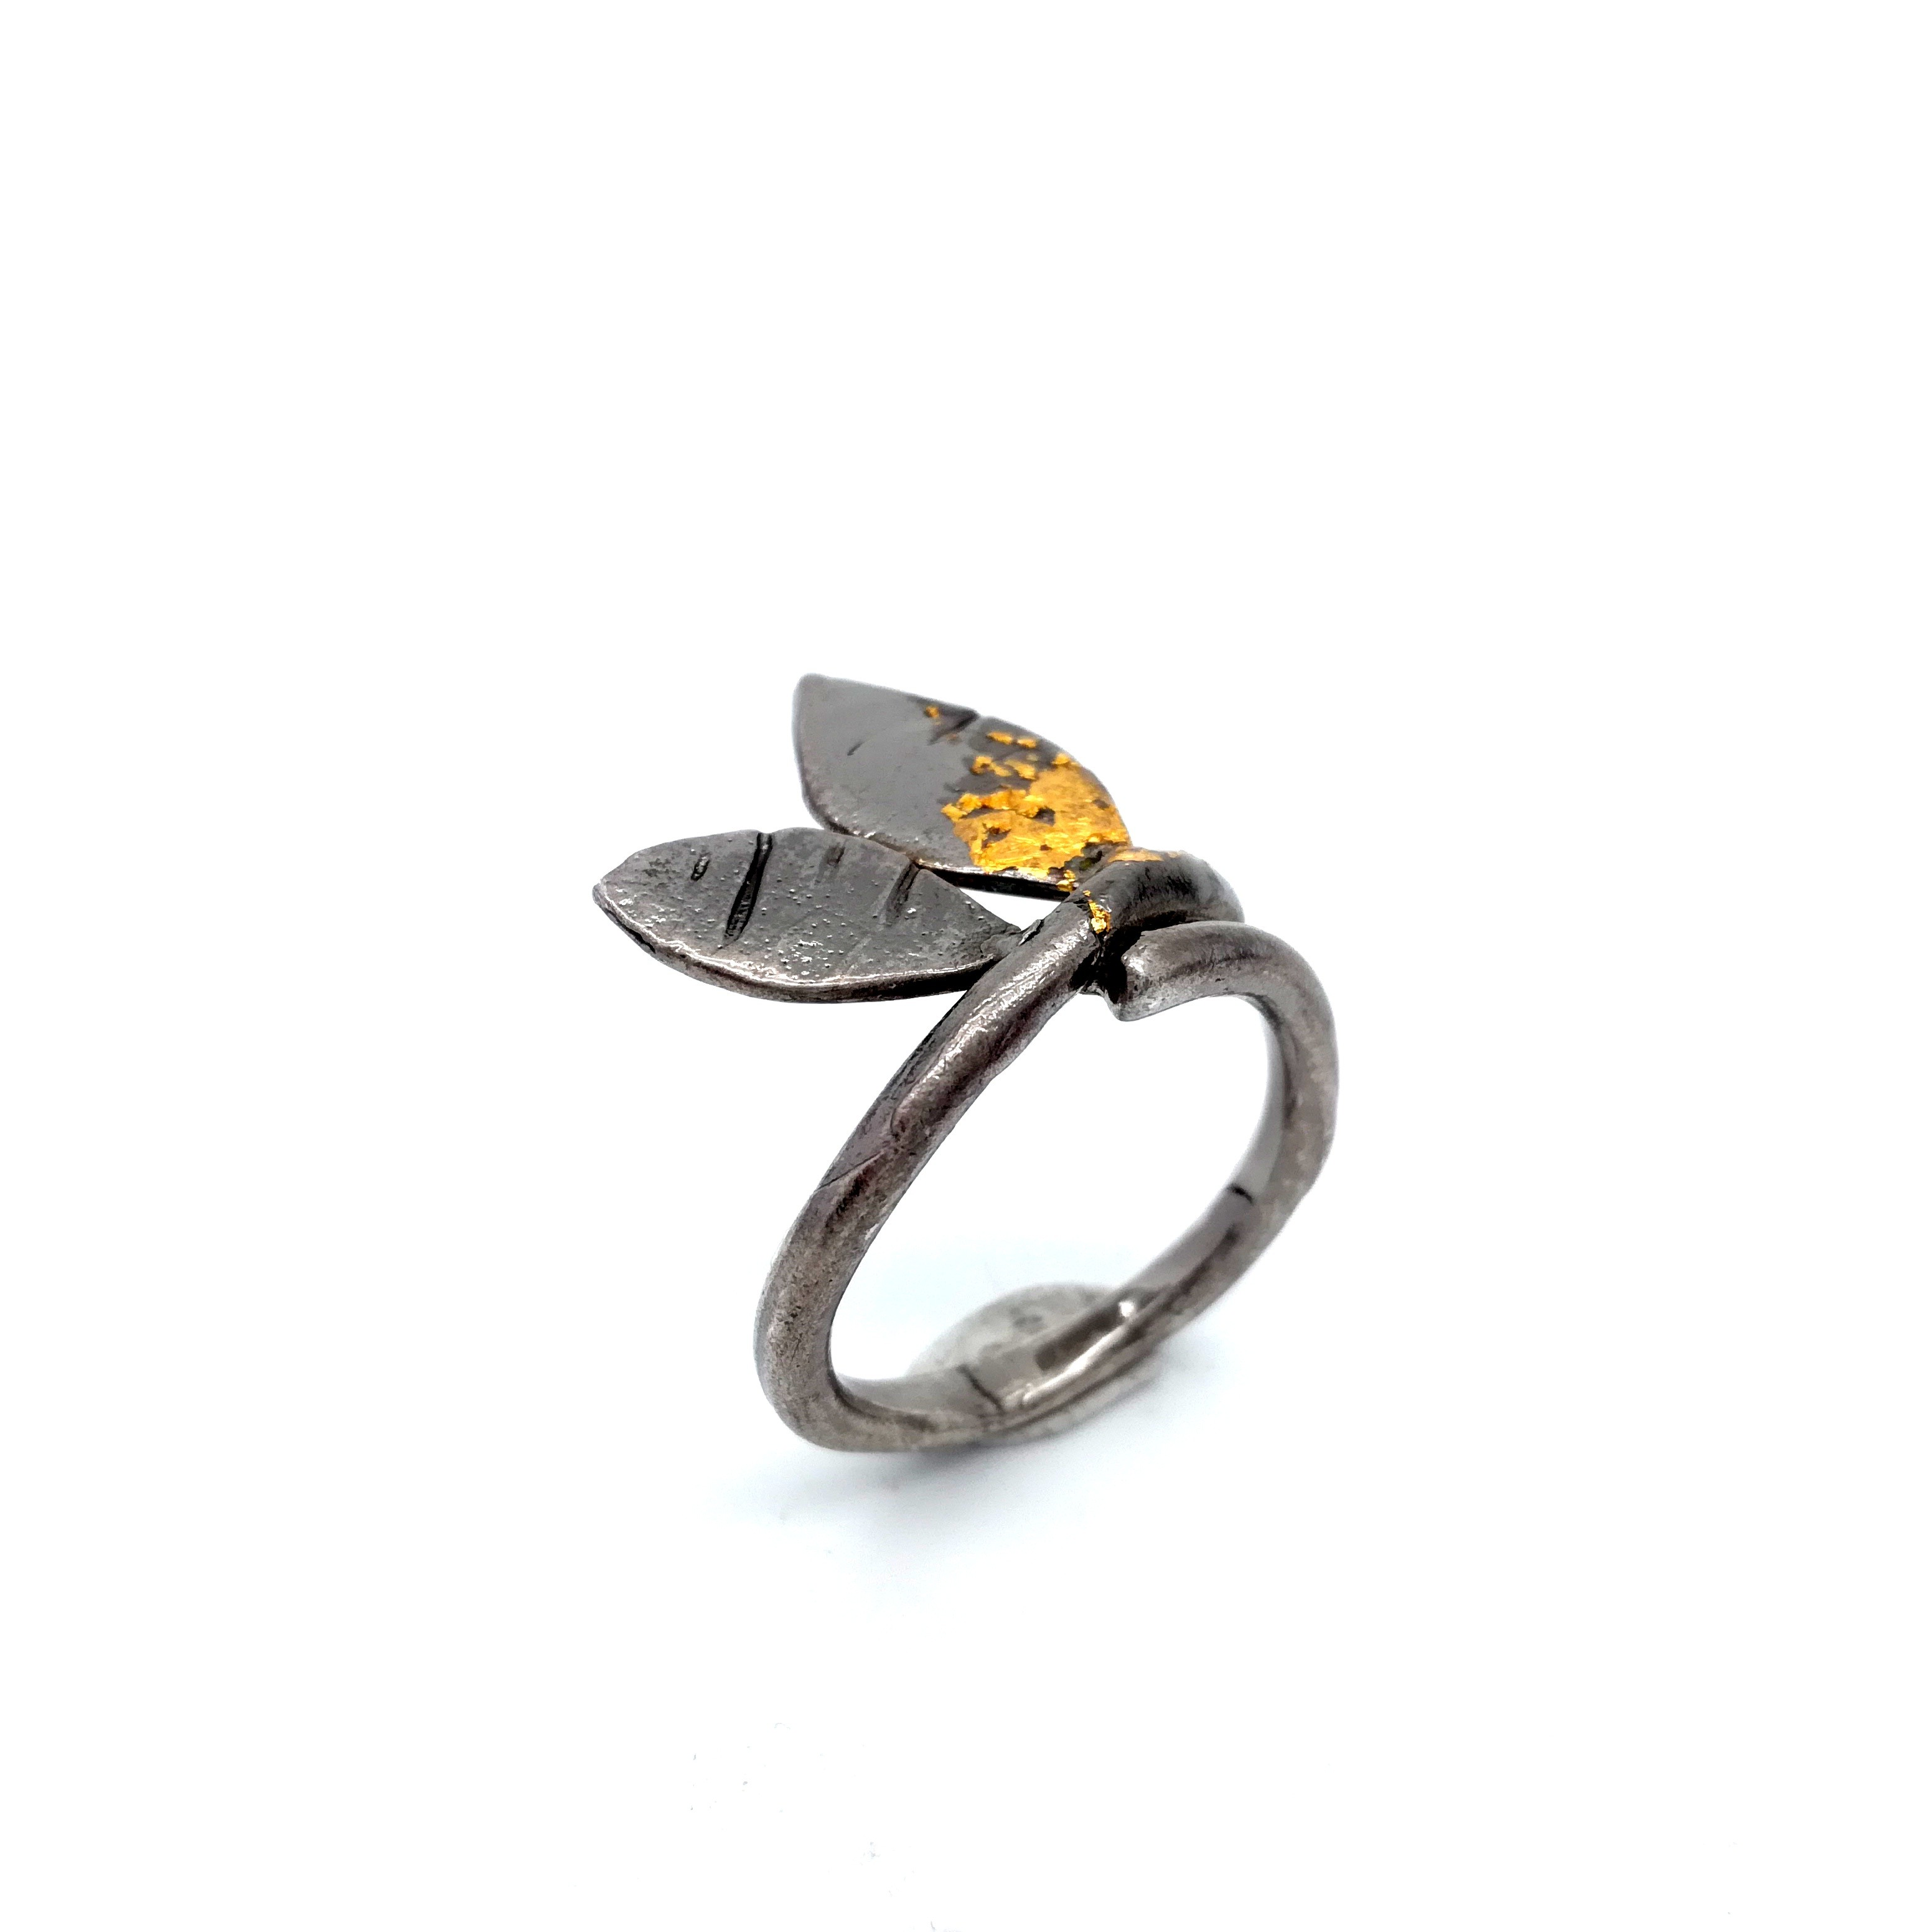 Silver ring 925 black rhodium plated with gold leaf 22K